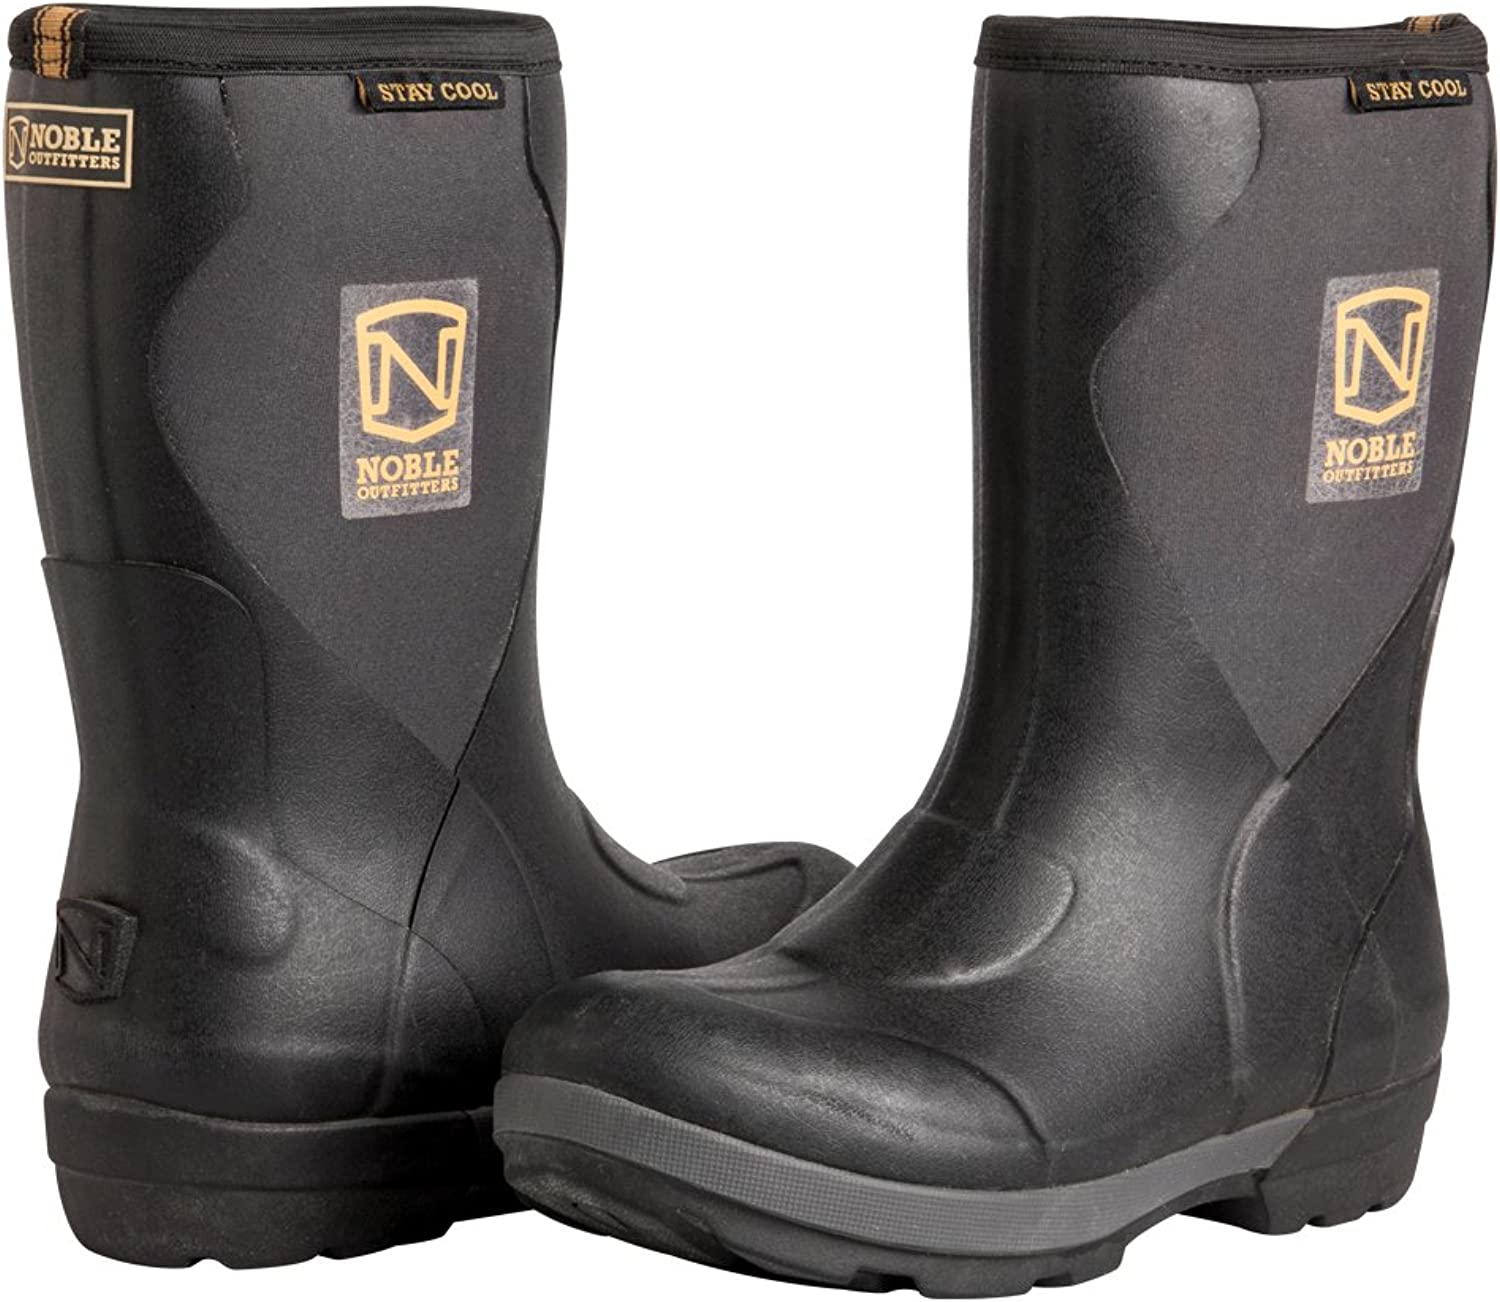 Noble Outfitters MUDS Stay Cool Womens Mid Boots